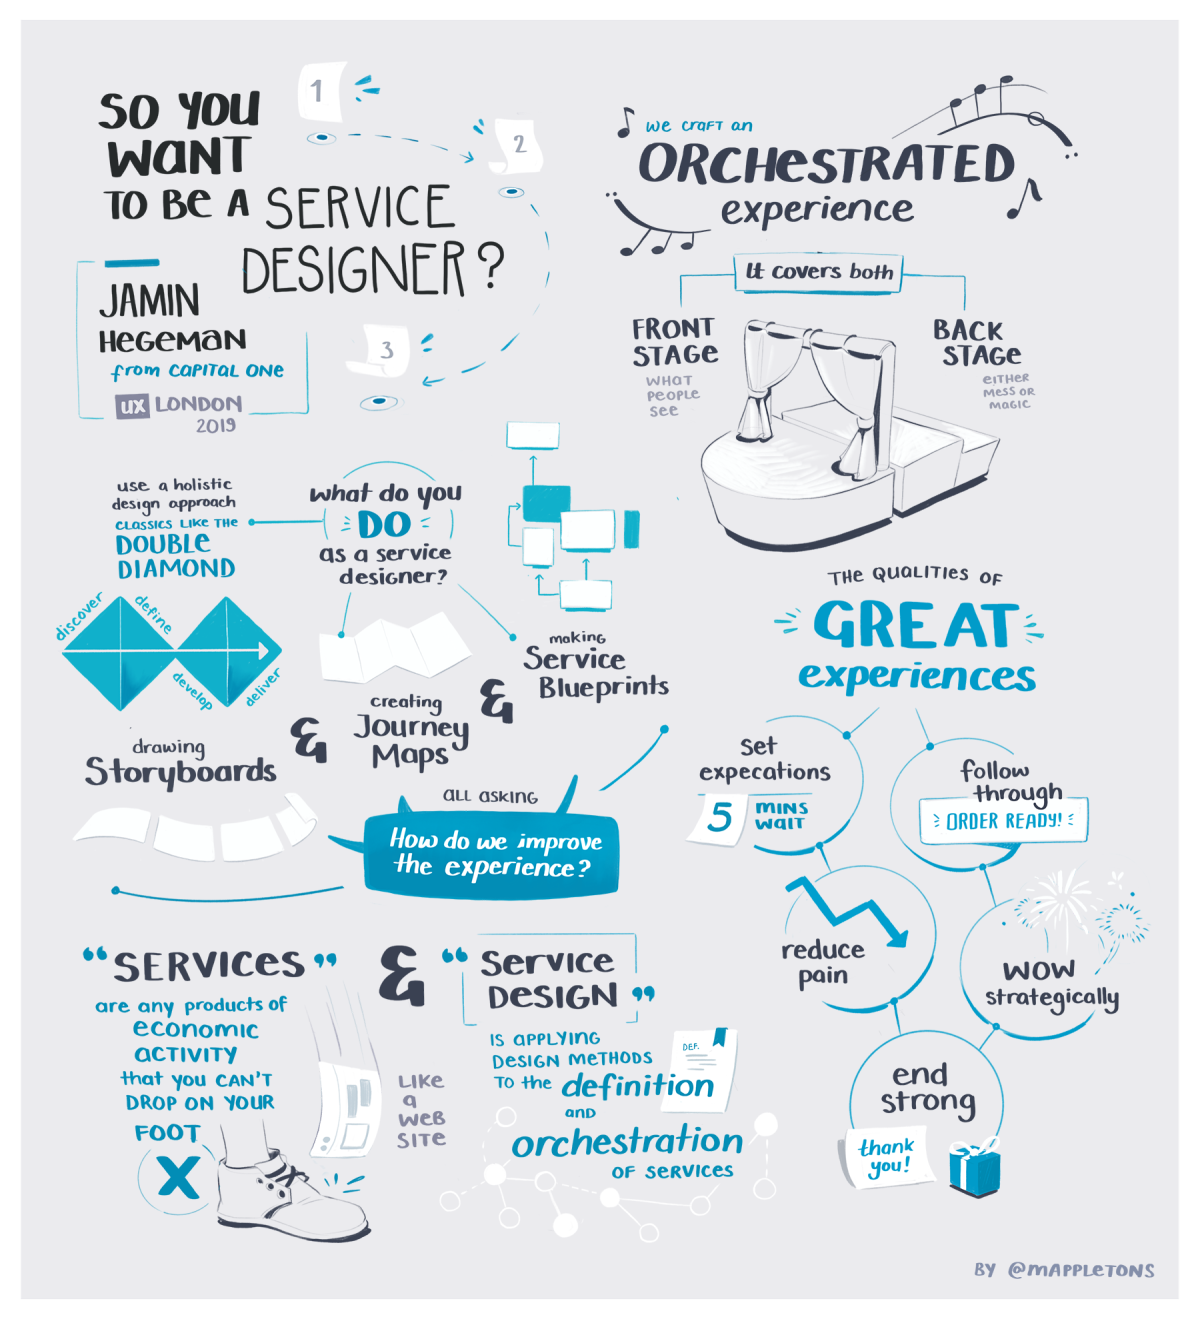 Illustrated notes from the 2019 ux london conference